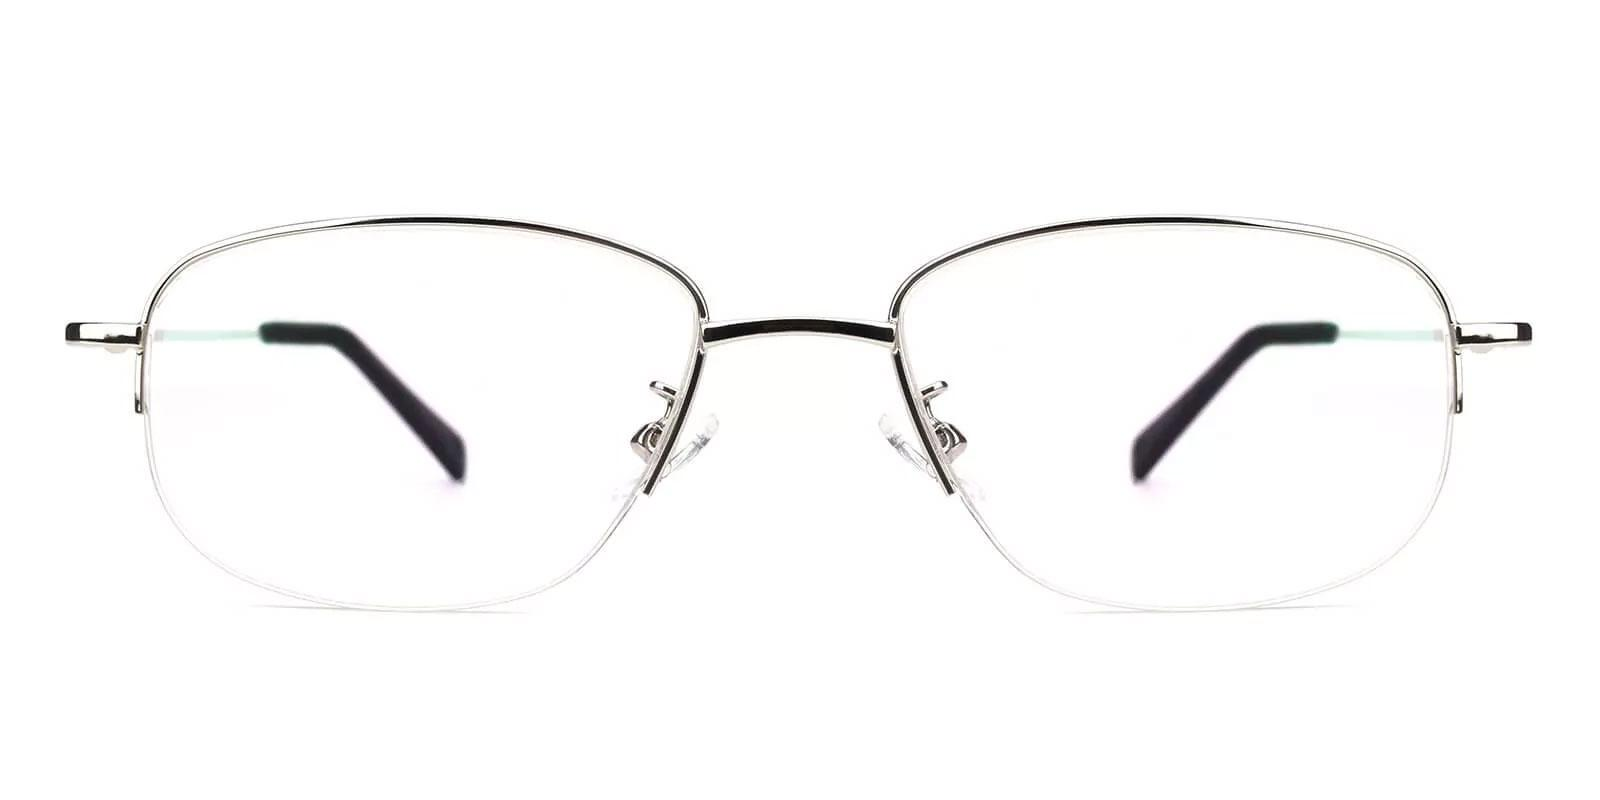 Joshua Silver Metal Eyeglasses , NosePads Frames from ABBE Glasses